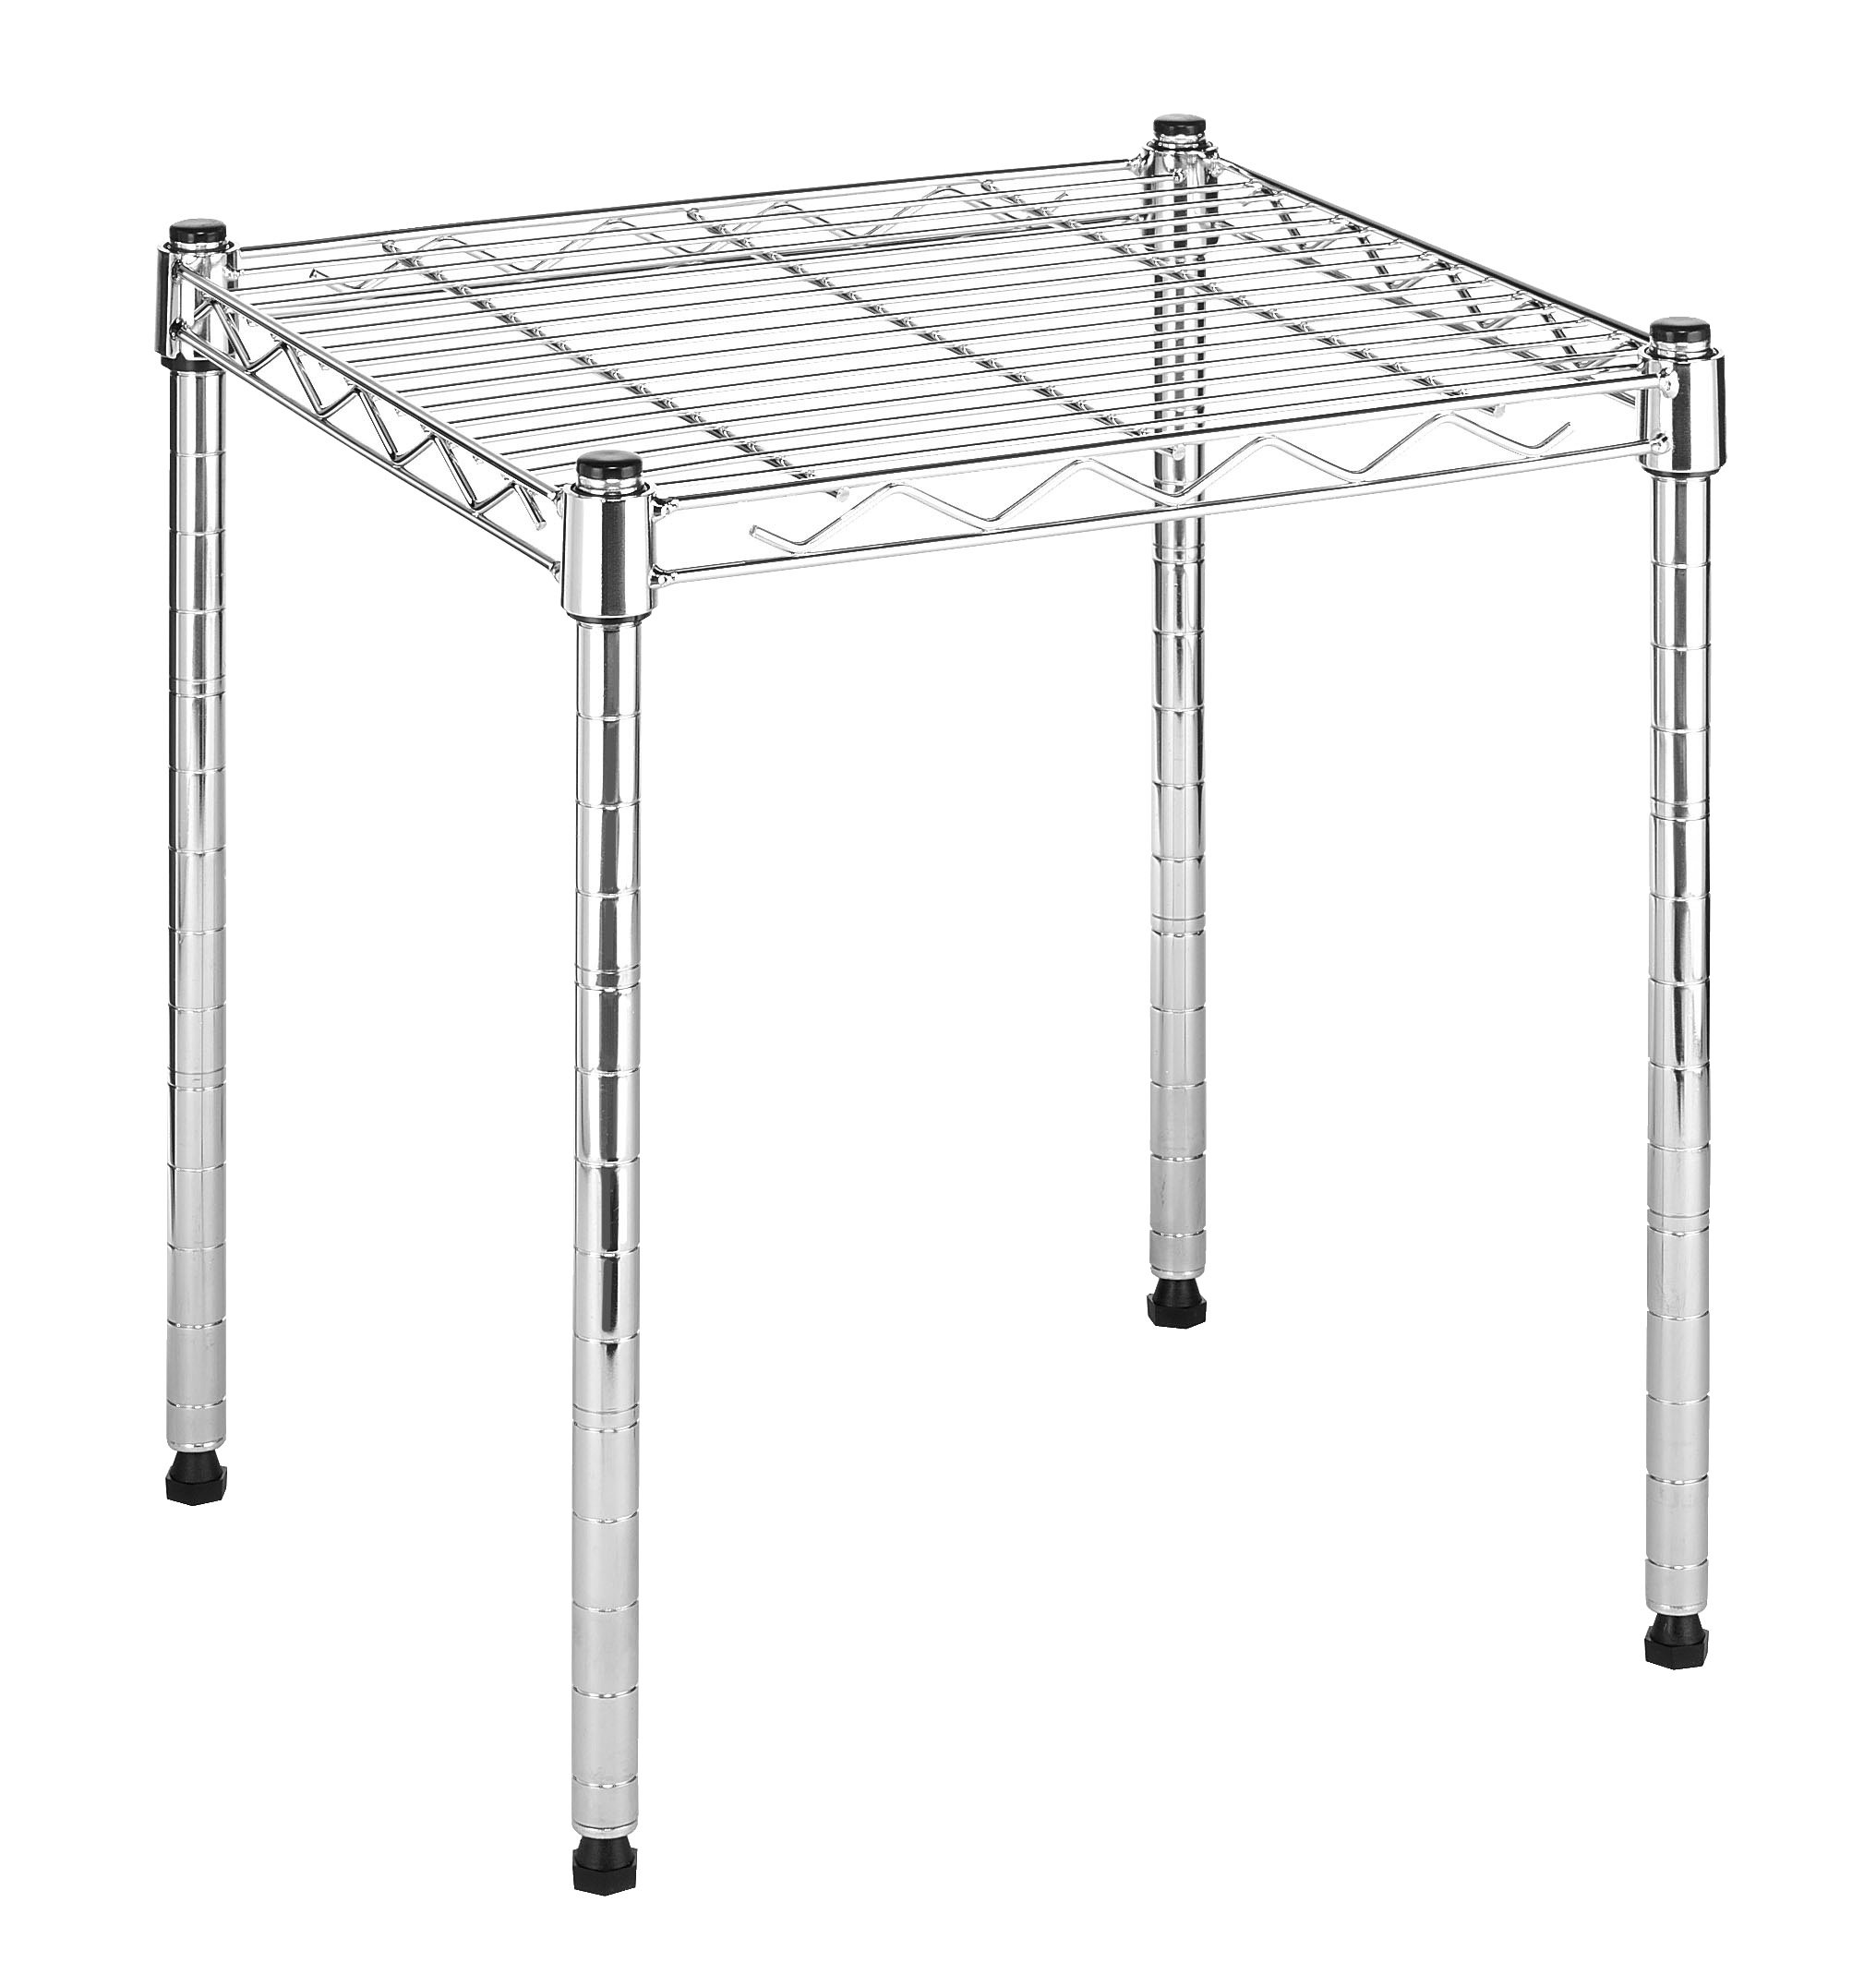 Whitmor Supreme Stacking Shelf and Organizer - Adjustable - Chrome by Whitmor